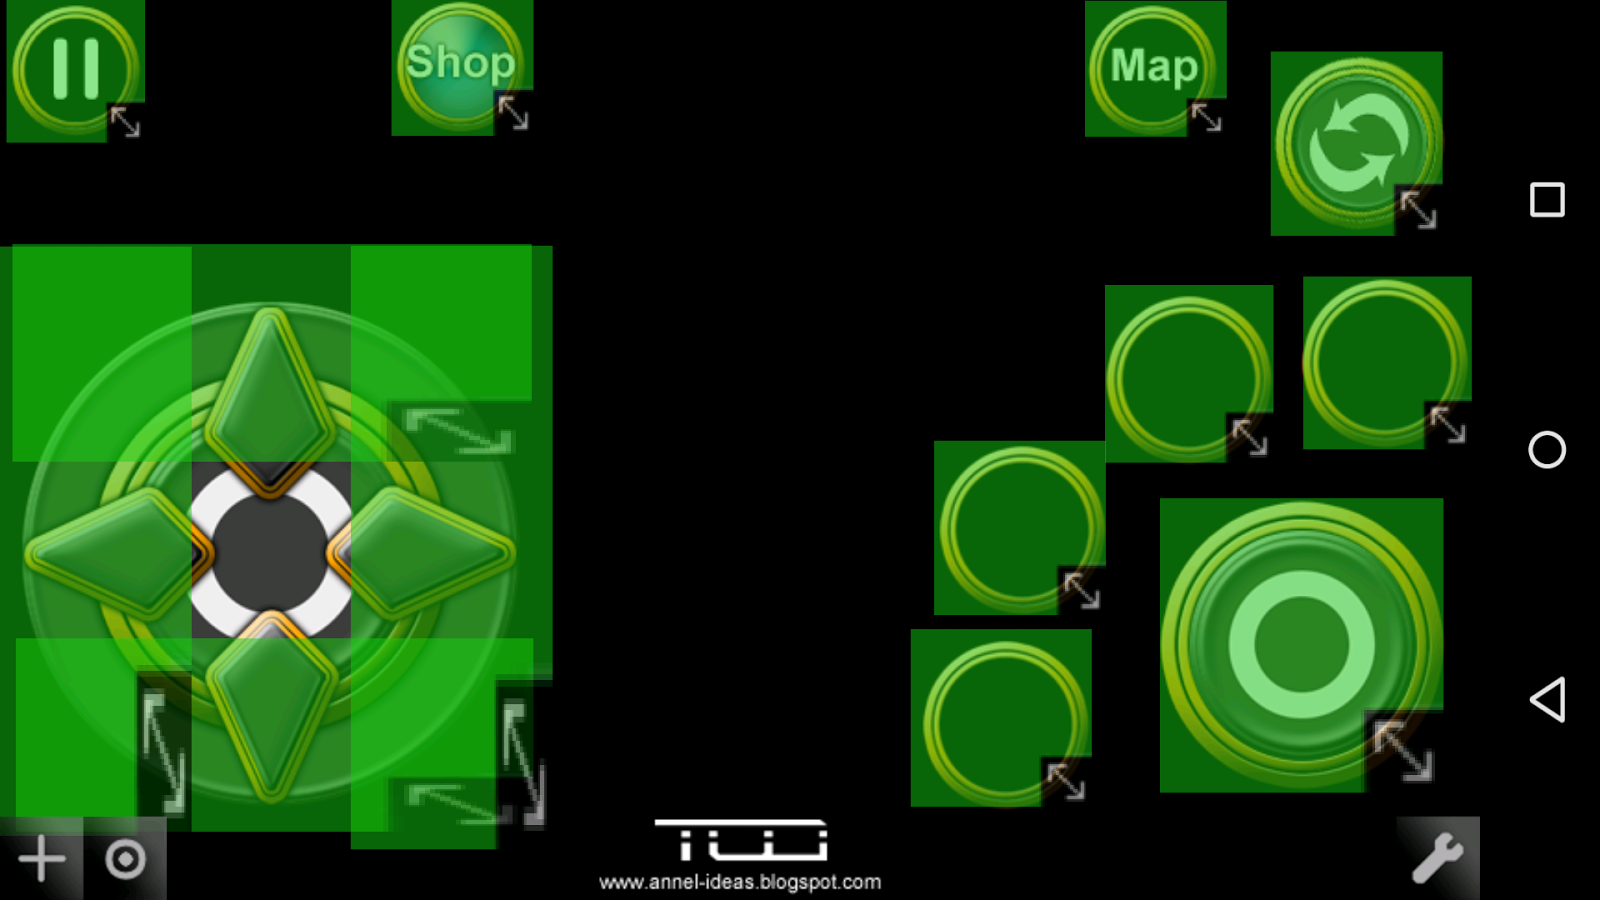 BT Controller Editor 1 0 5 APK Download - Android Tools Apps